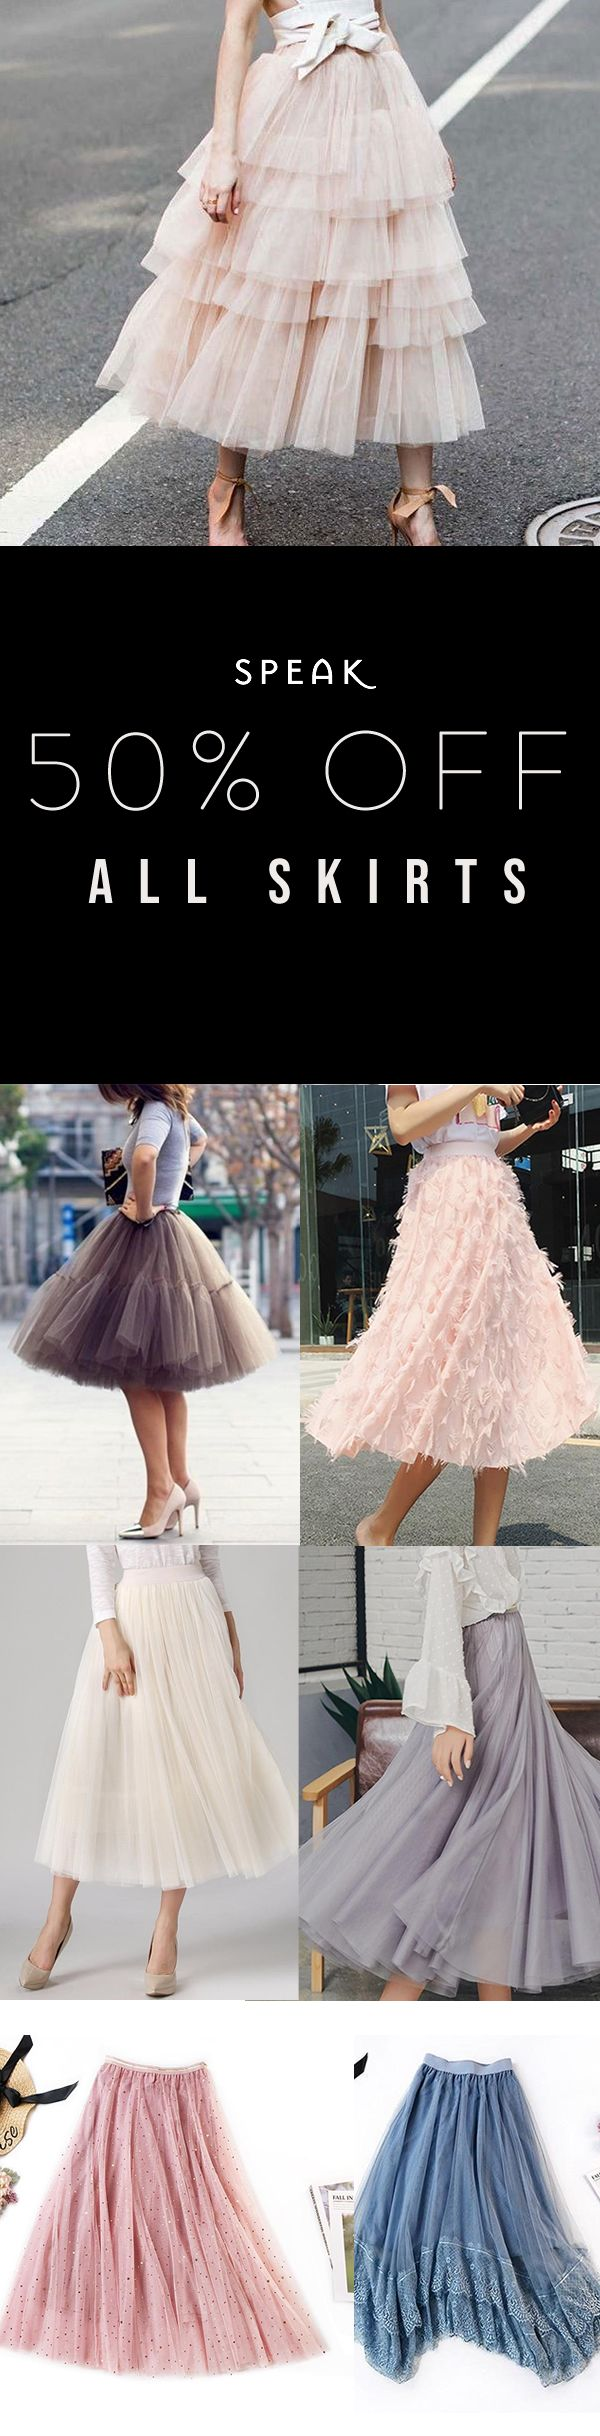 Tulle Skirt Sale! 50% Off (or more) all skirts at Speak. – Clothing